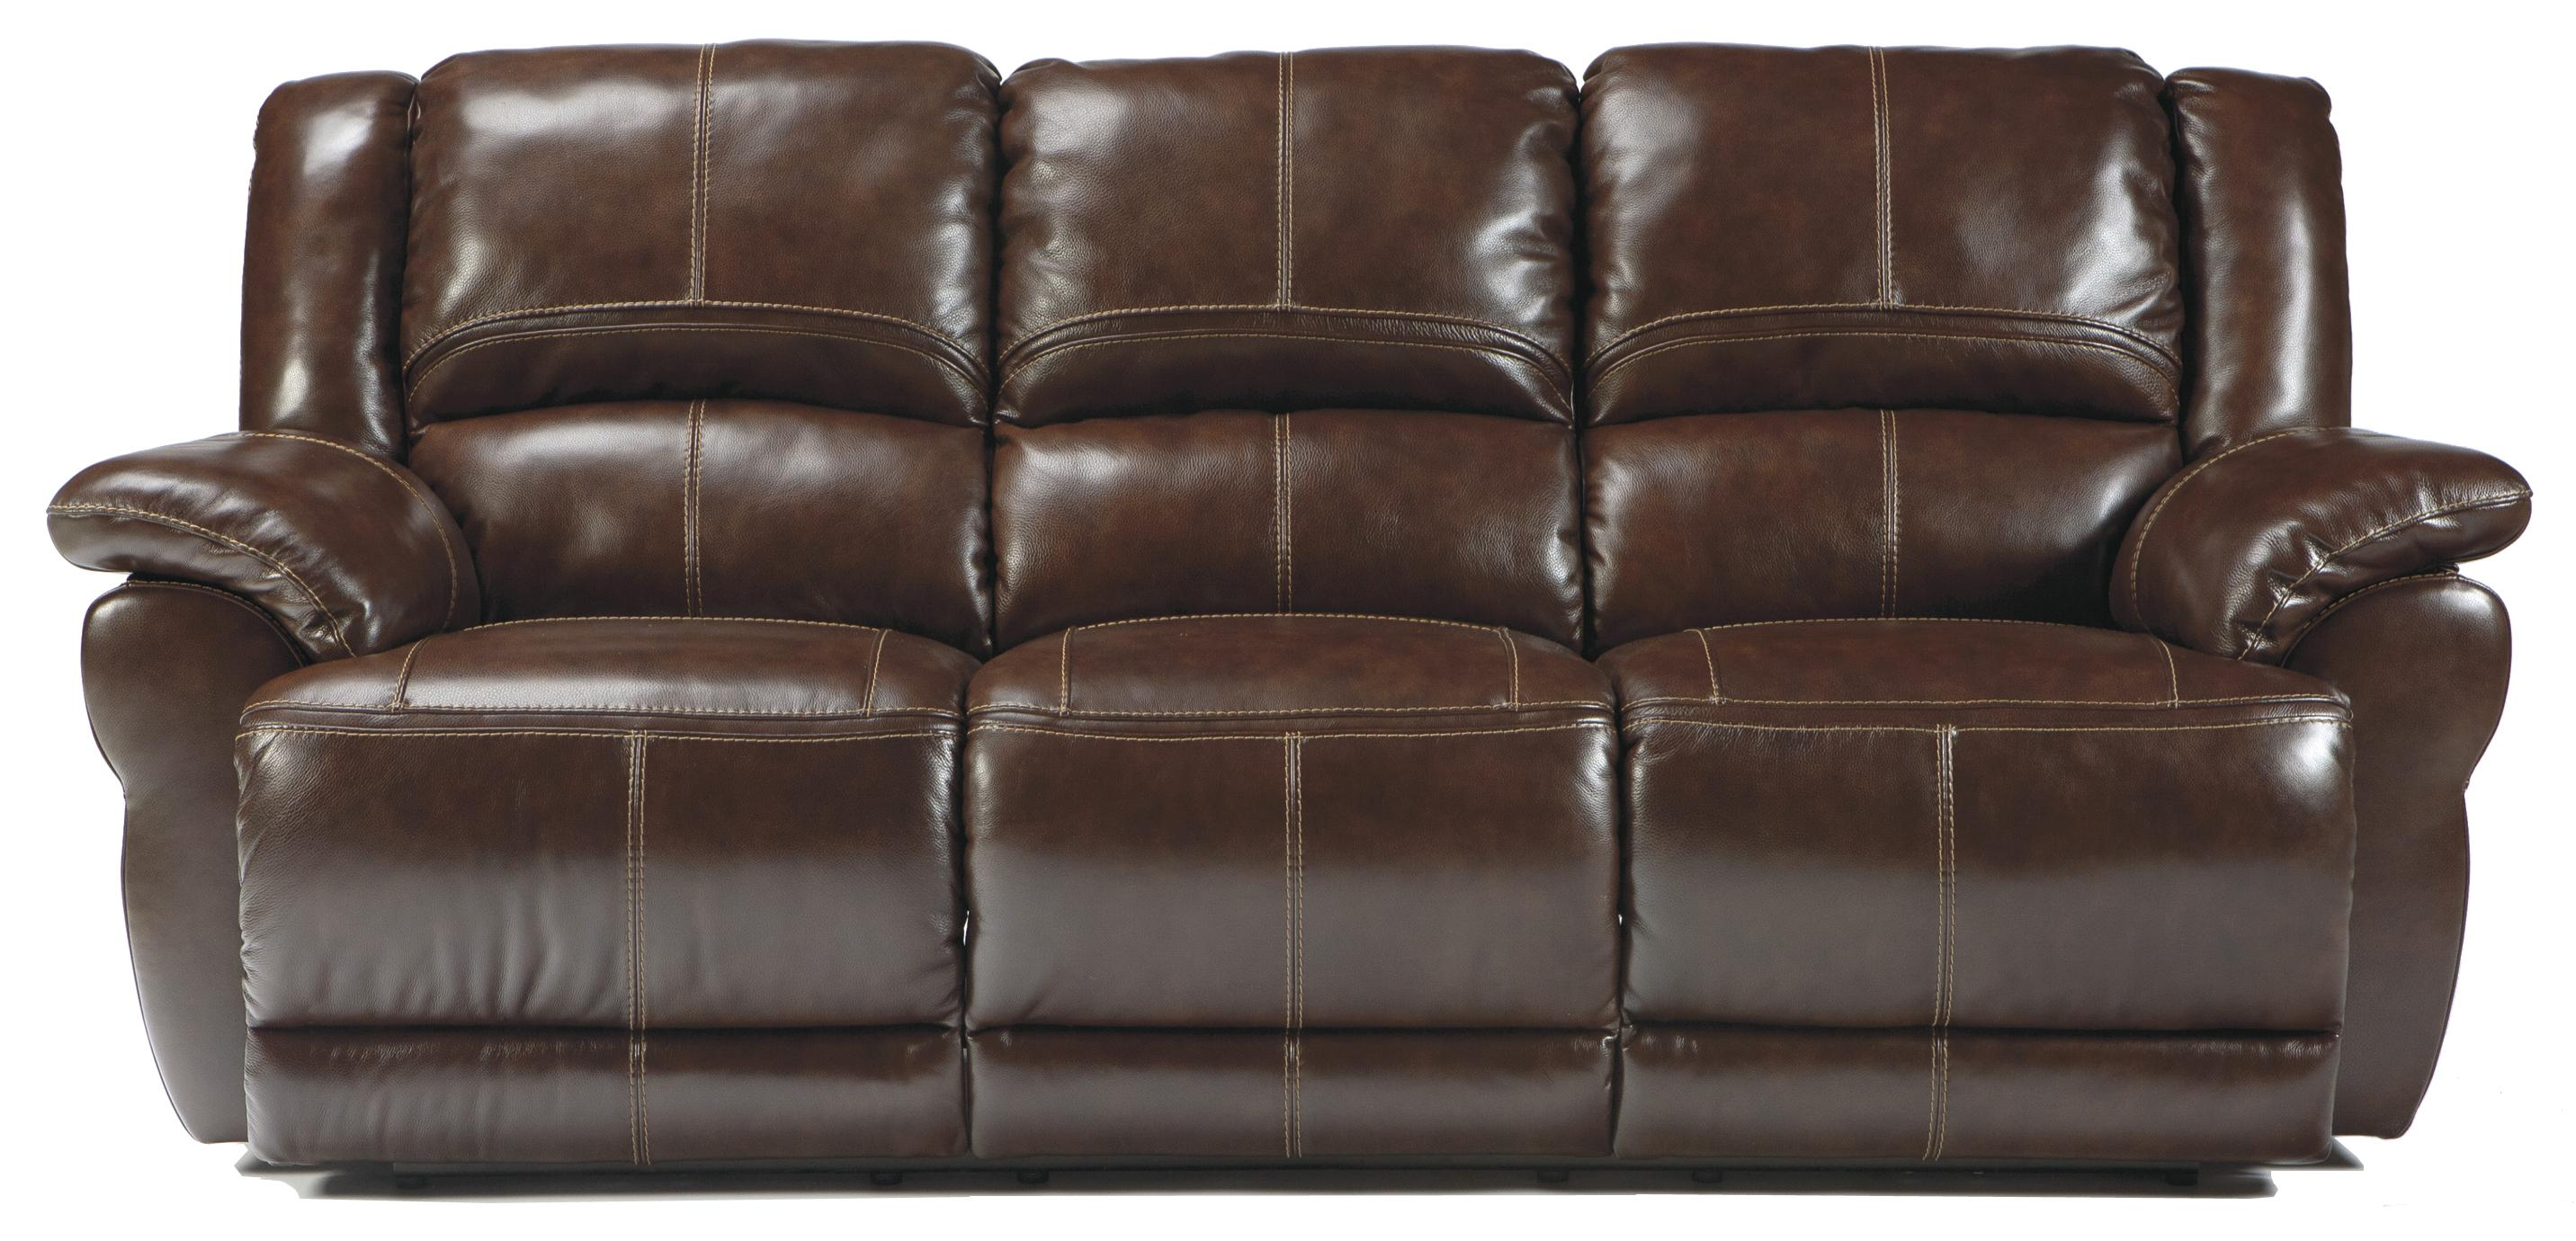 Signature Design by Ashley Lenoris - Coffee Reclining Power Sofa - Item Number: U9890187